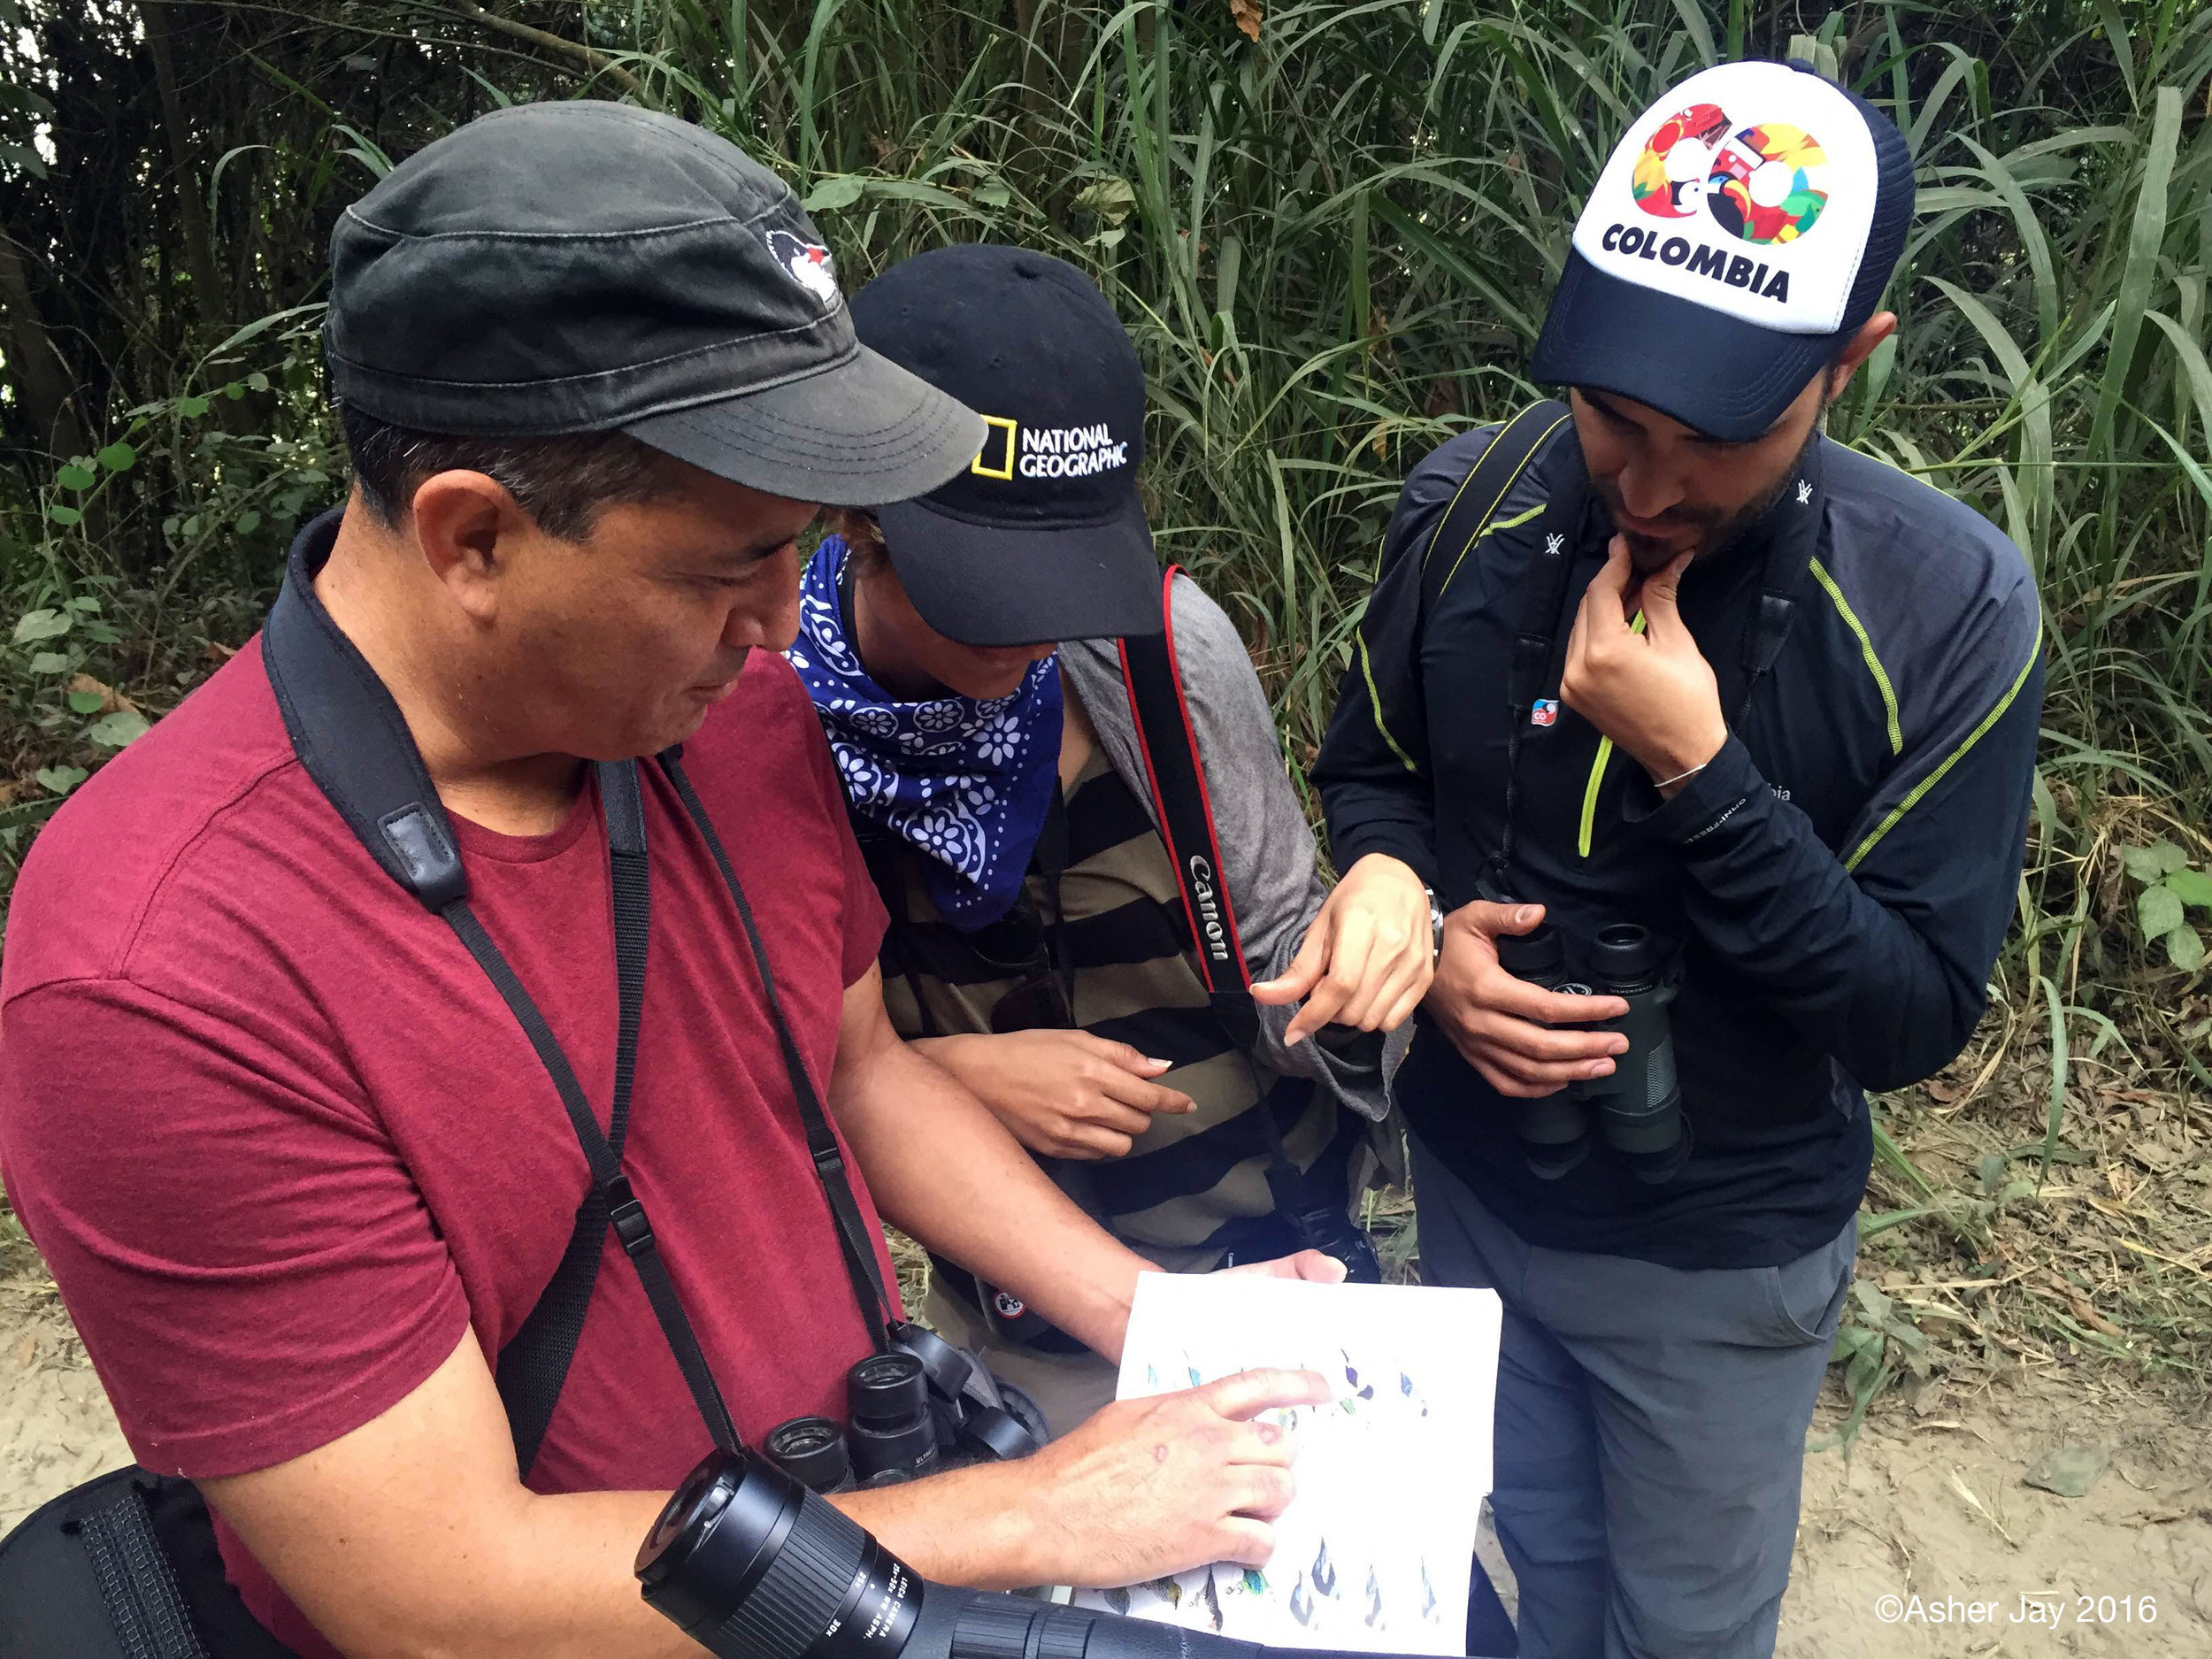 Alvaro Jaramillo pointing out the bird species we just saw in the Birds of Colombia guide book to Juan-Pablo (works on Colombia's tourism outreach) and me (the girl who spots leaves and lasers as birds.)